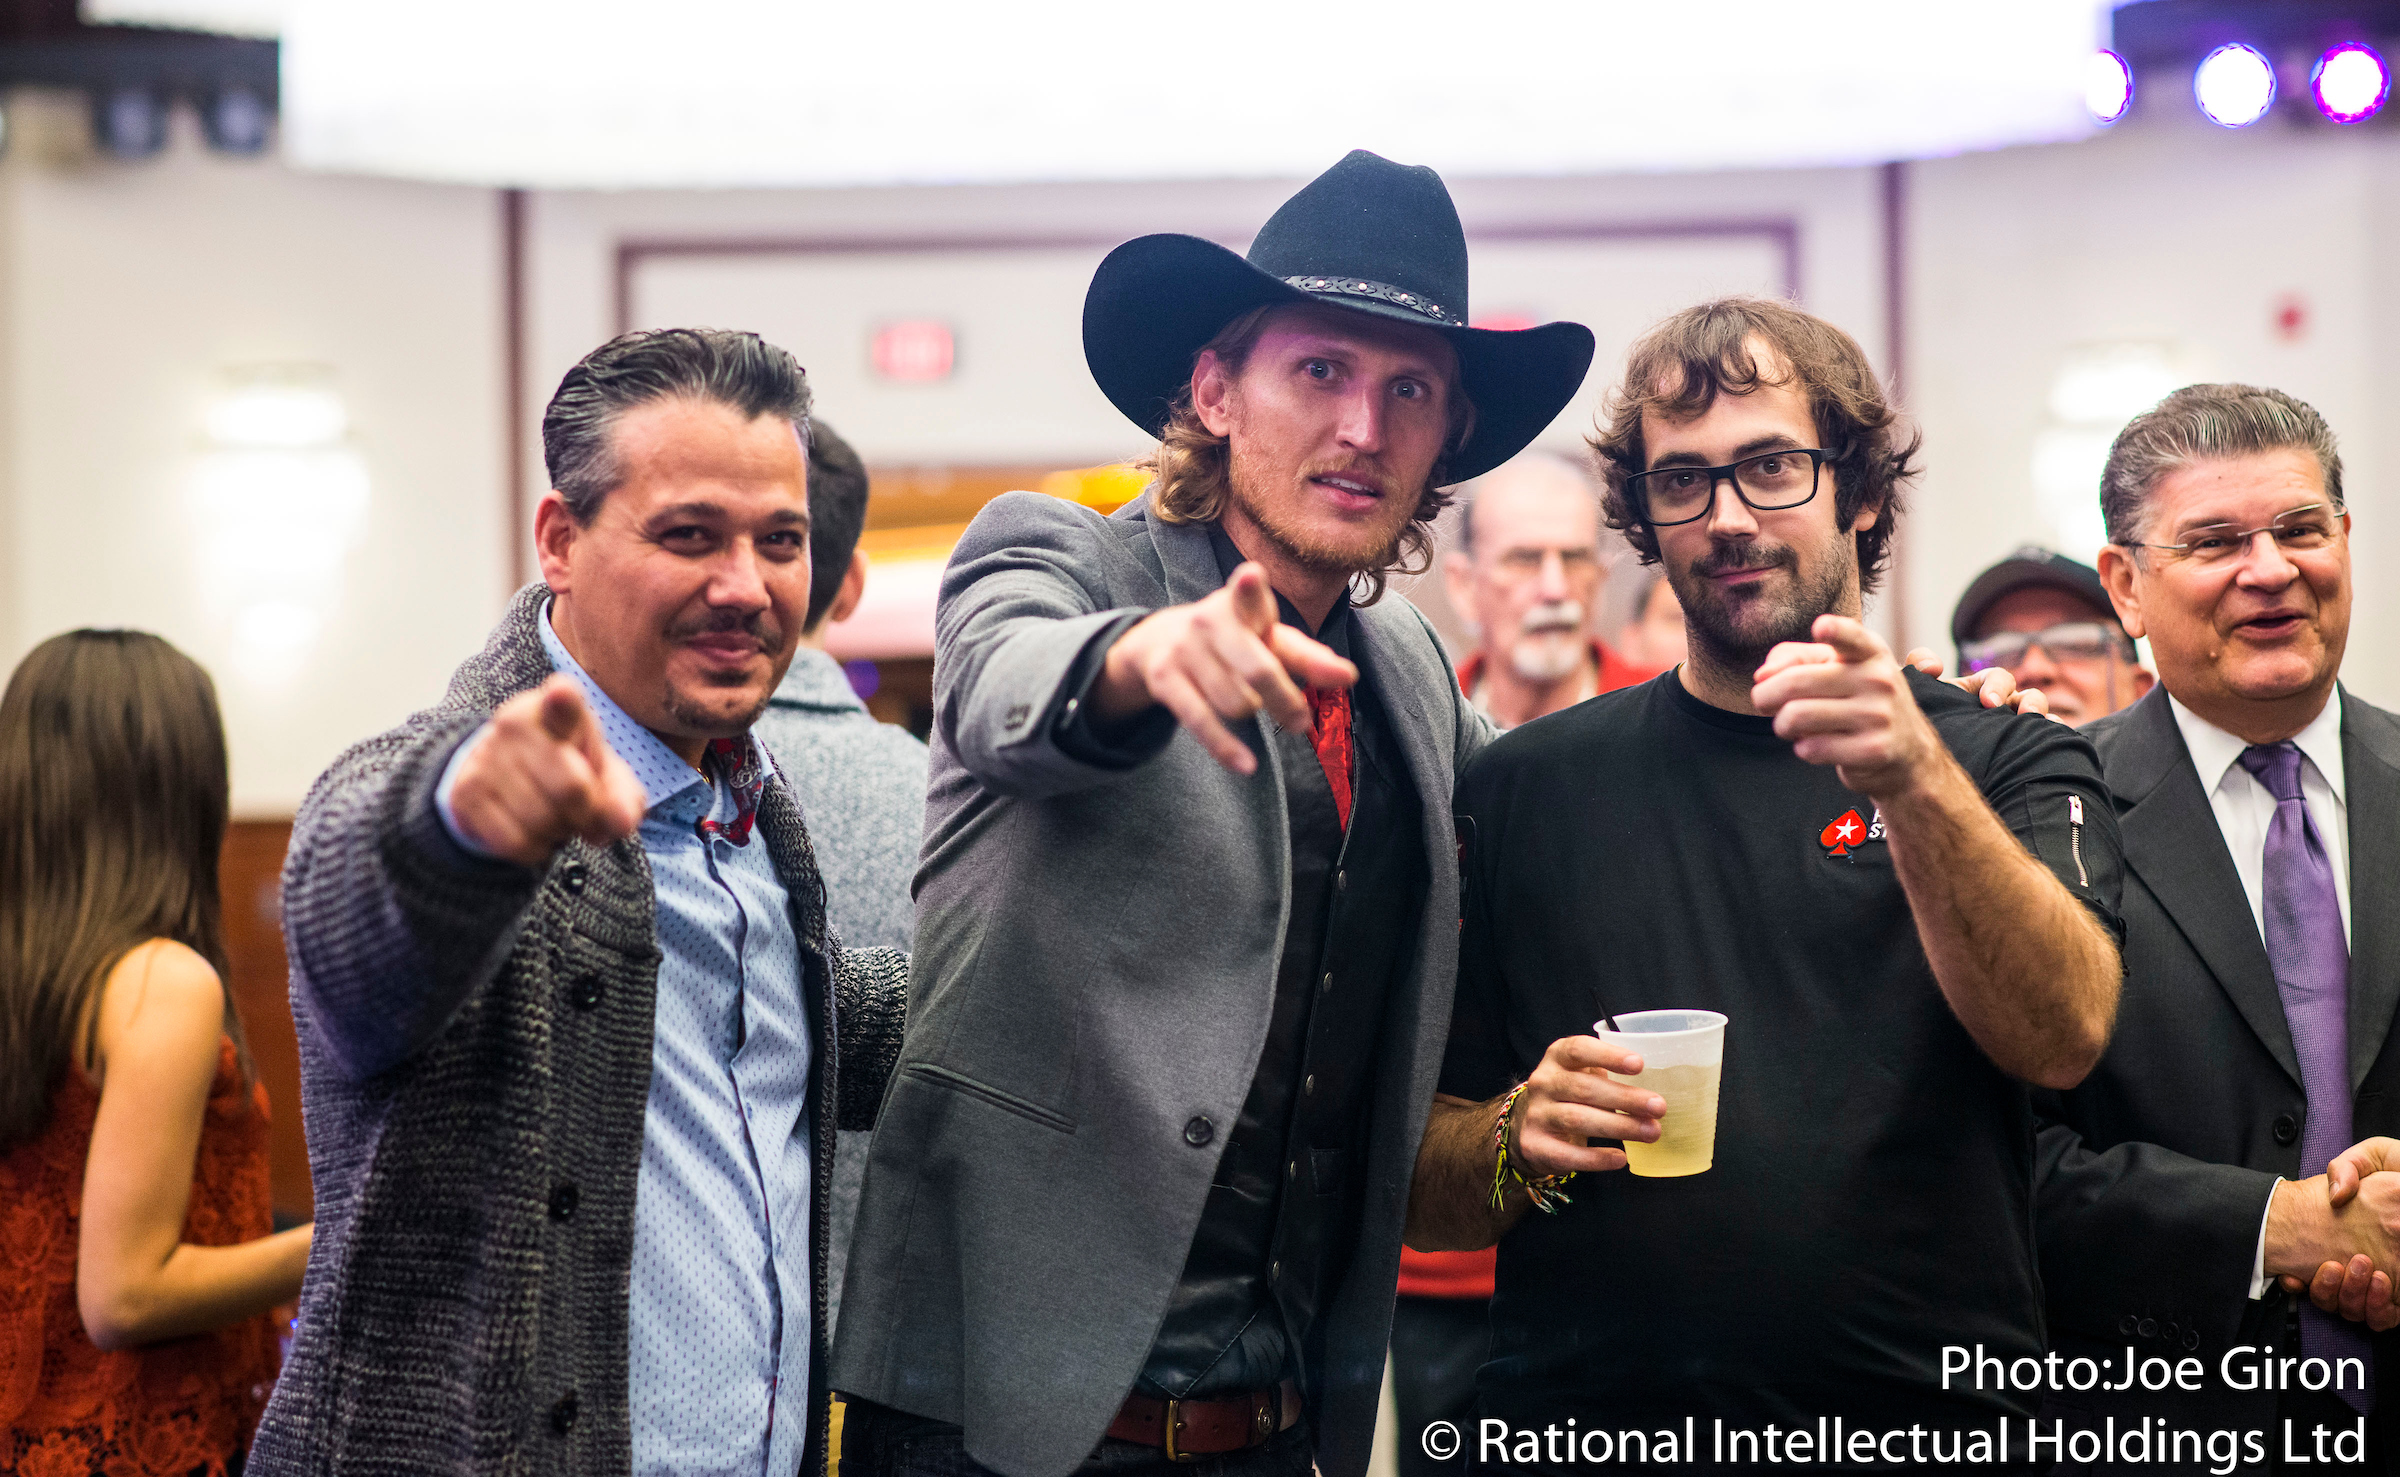 'Survivor' Star Tyson Apostol Runs It Up at PokerStars Festival NJ 101